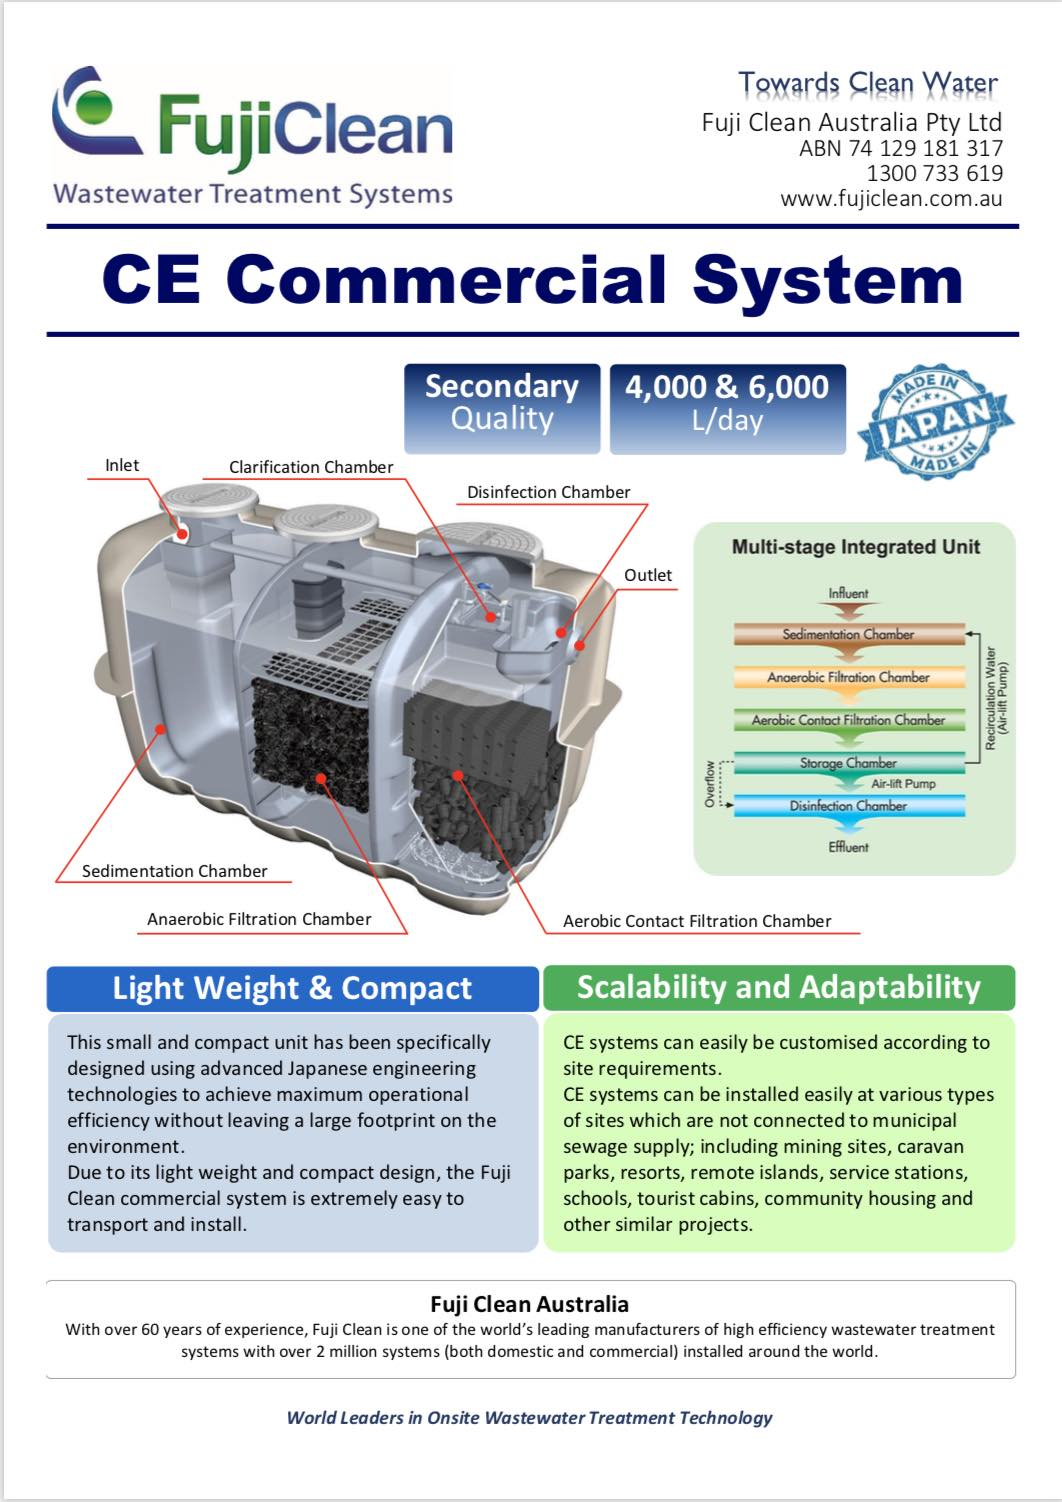 FujiClean CE Commercial System